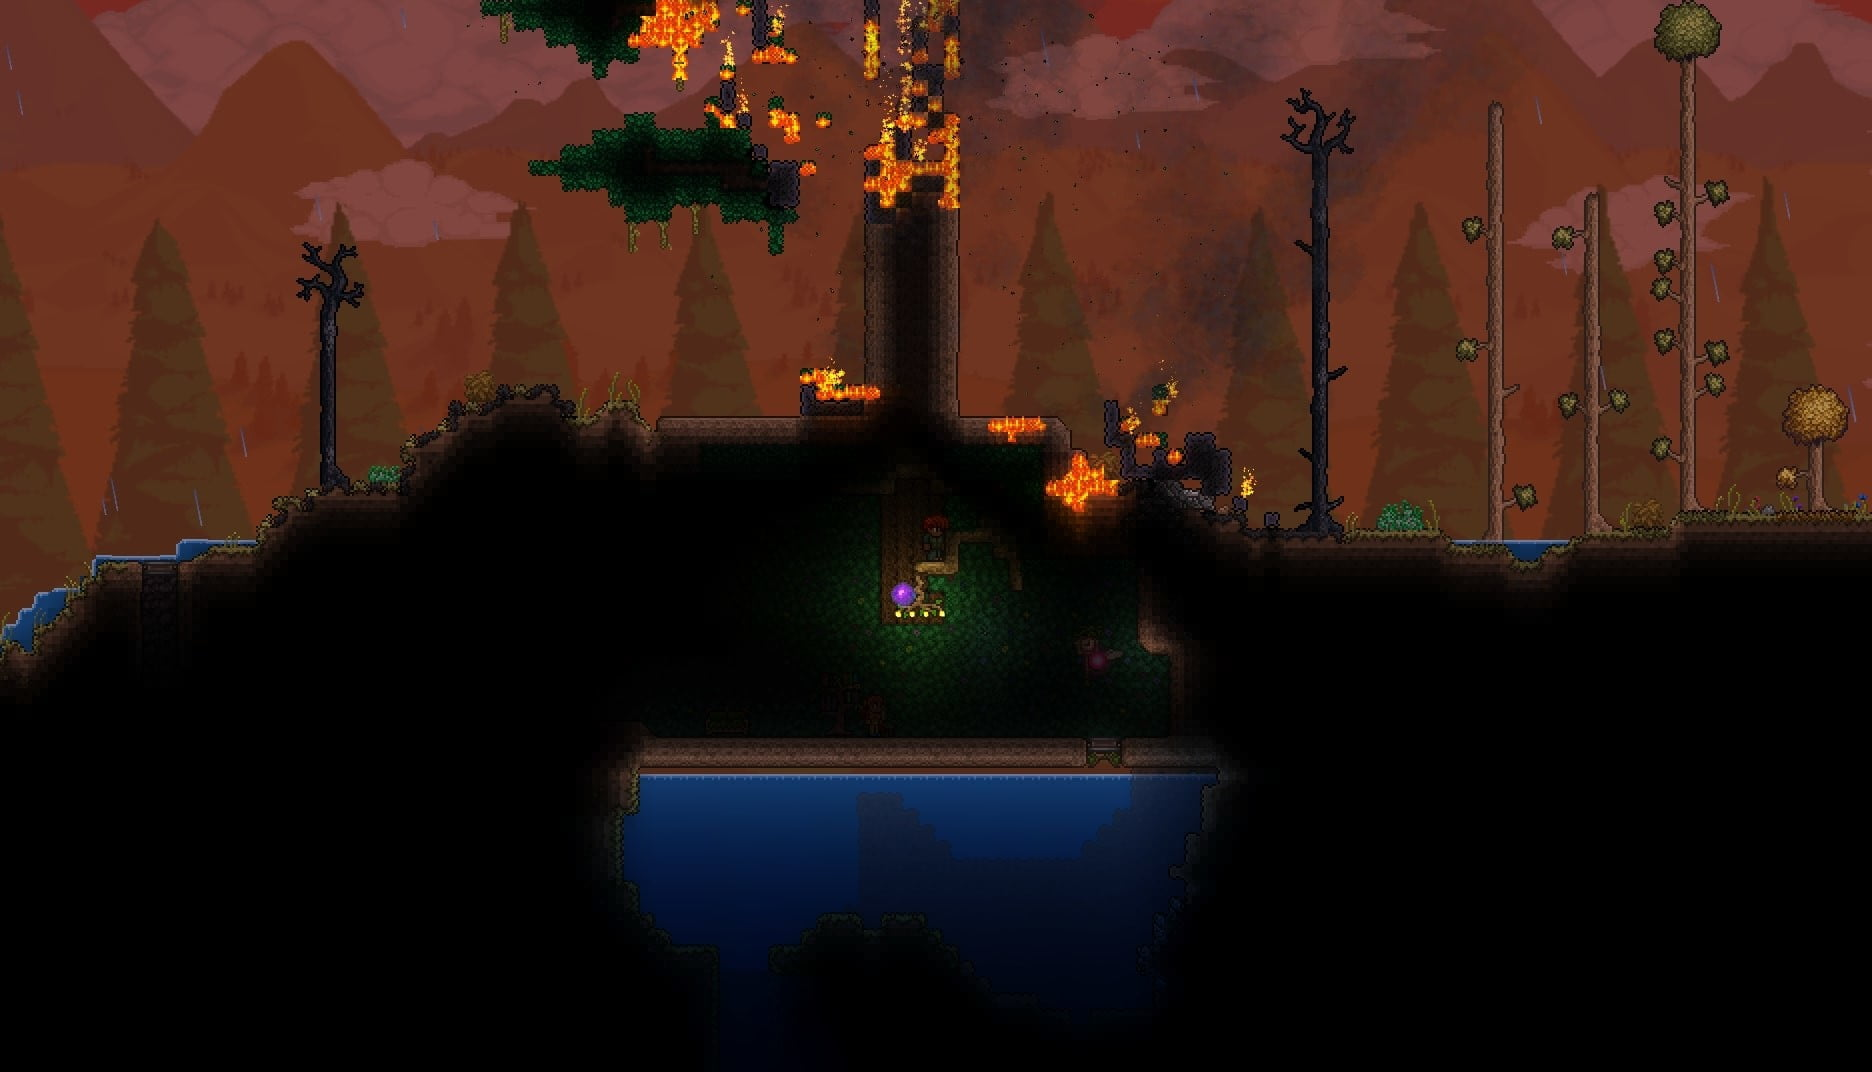 Best Terraria Mods Digital Trends Vangaurdtech Solar eclipse starts after a blood moon, then as i'm heading to my tree to start killing things from my rope a probe shows up and triggers an invasion. vangaurdtech